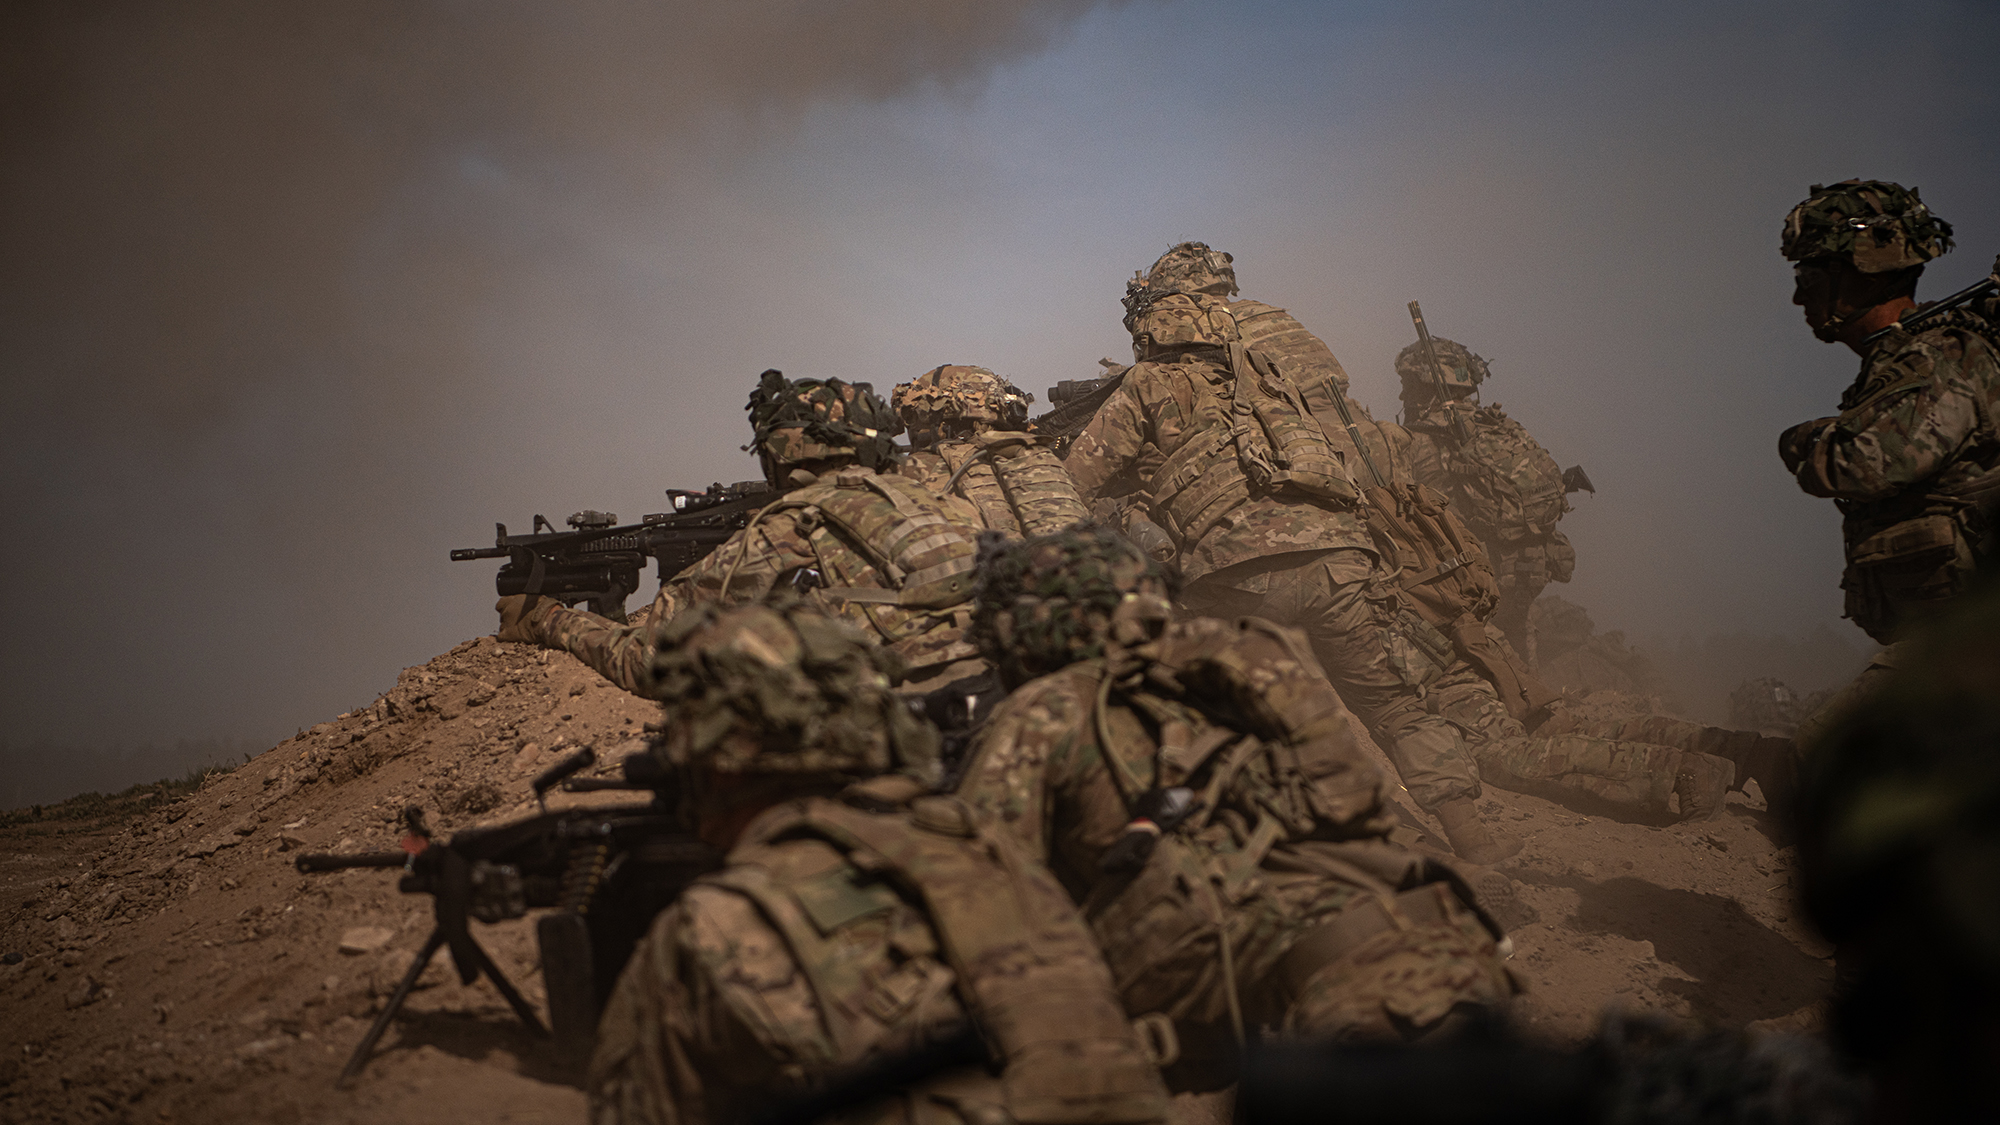 U.S. Army paratroopers move up on a berm to provide security for the assaulting element on July 29, 2020, during a company live fire exercise as part of the 173rd Brigade Field Training Exercise in Grafenwoehr Training Area, Germany from July 17 to Aug. 5, 2020. (Sgt. John Yountz/Army)